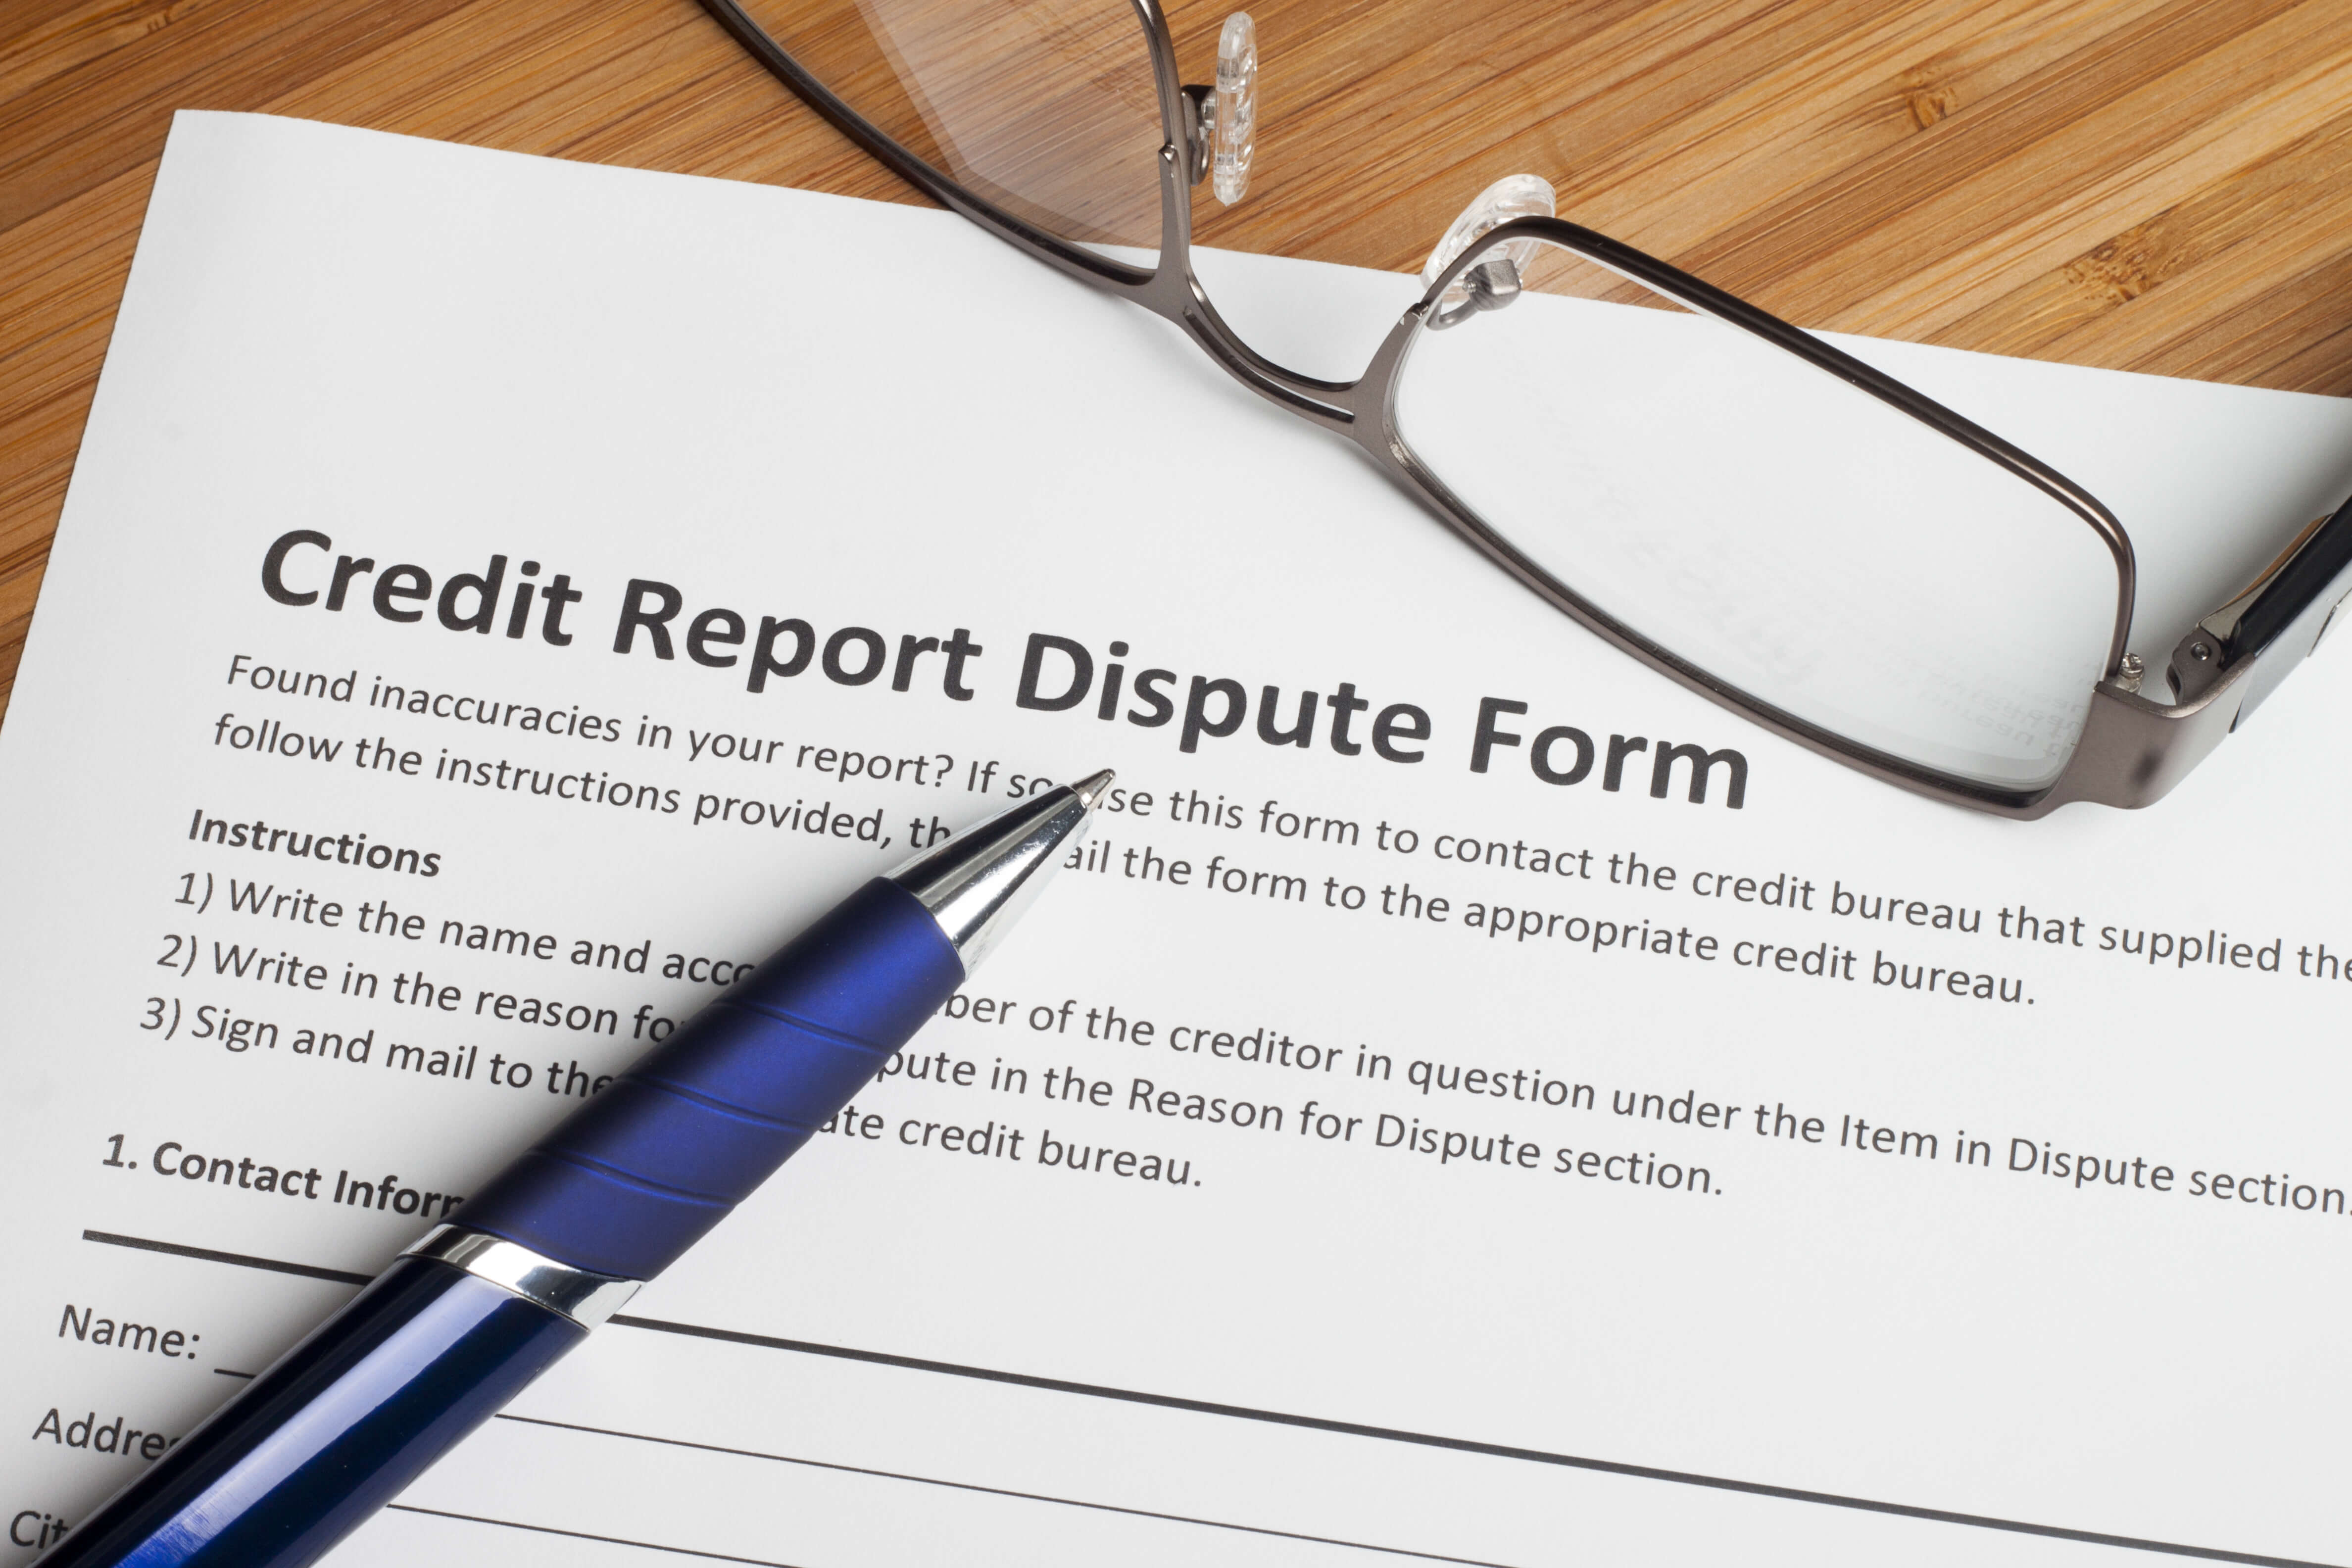 dispute an incorrect credit report entry with sample dispute letter